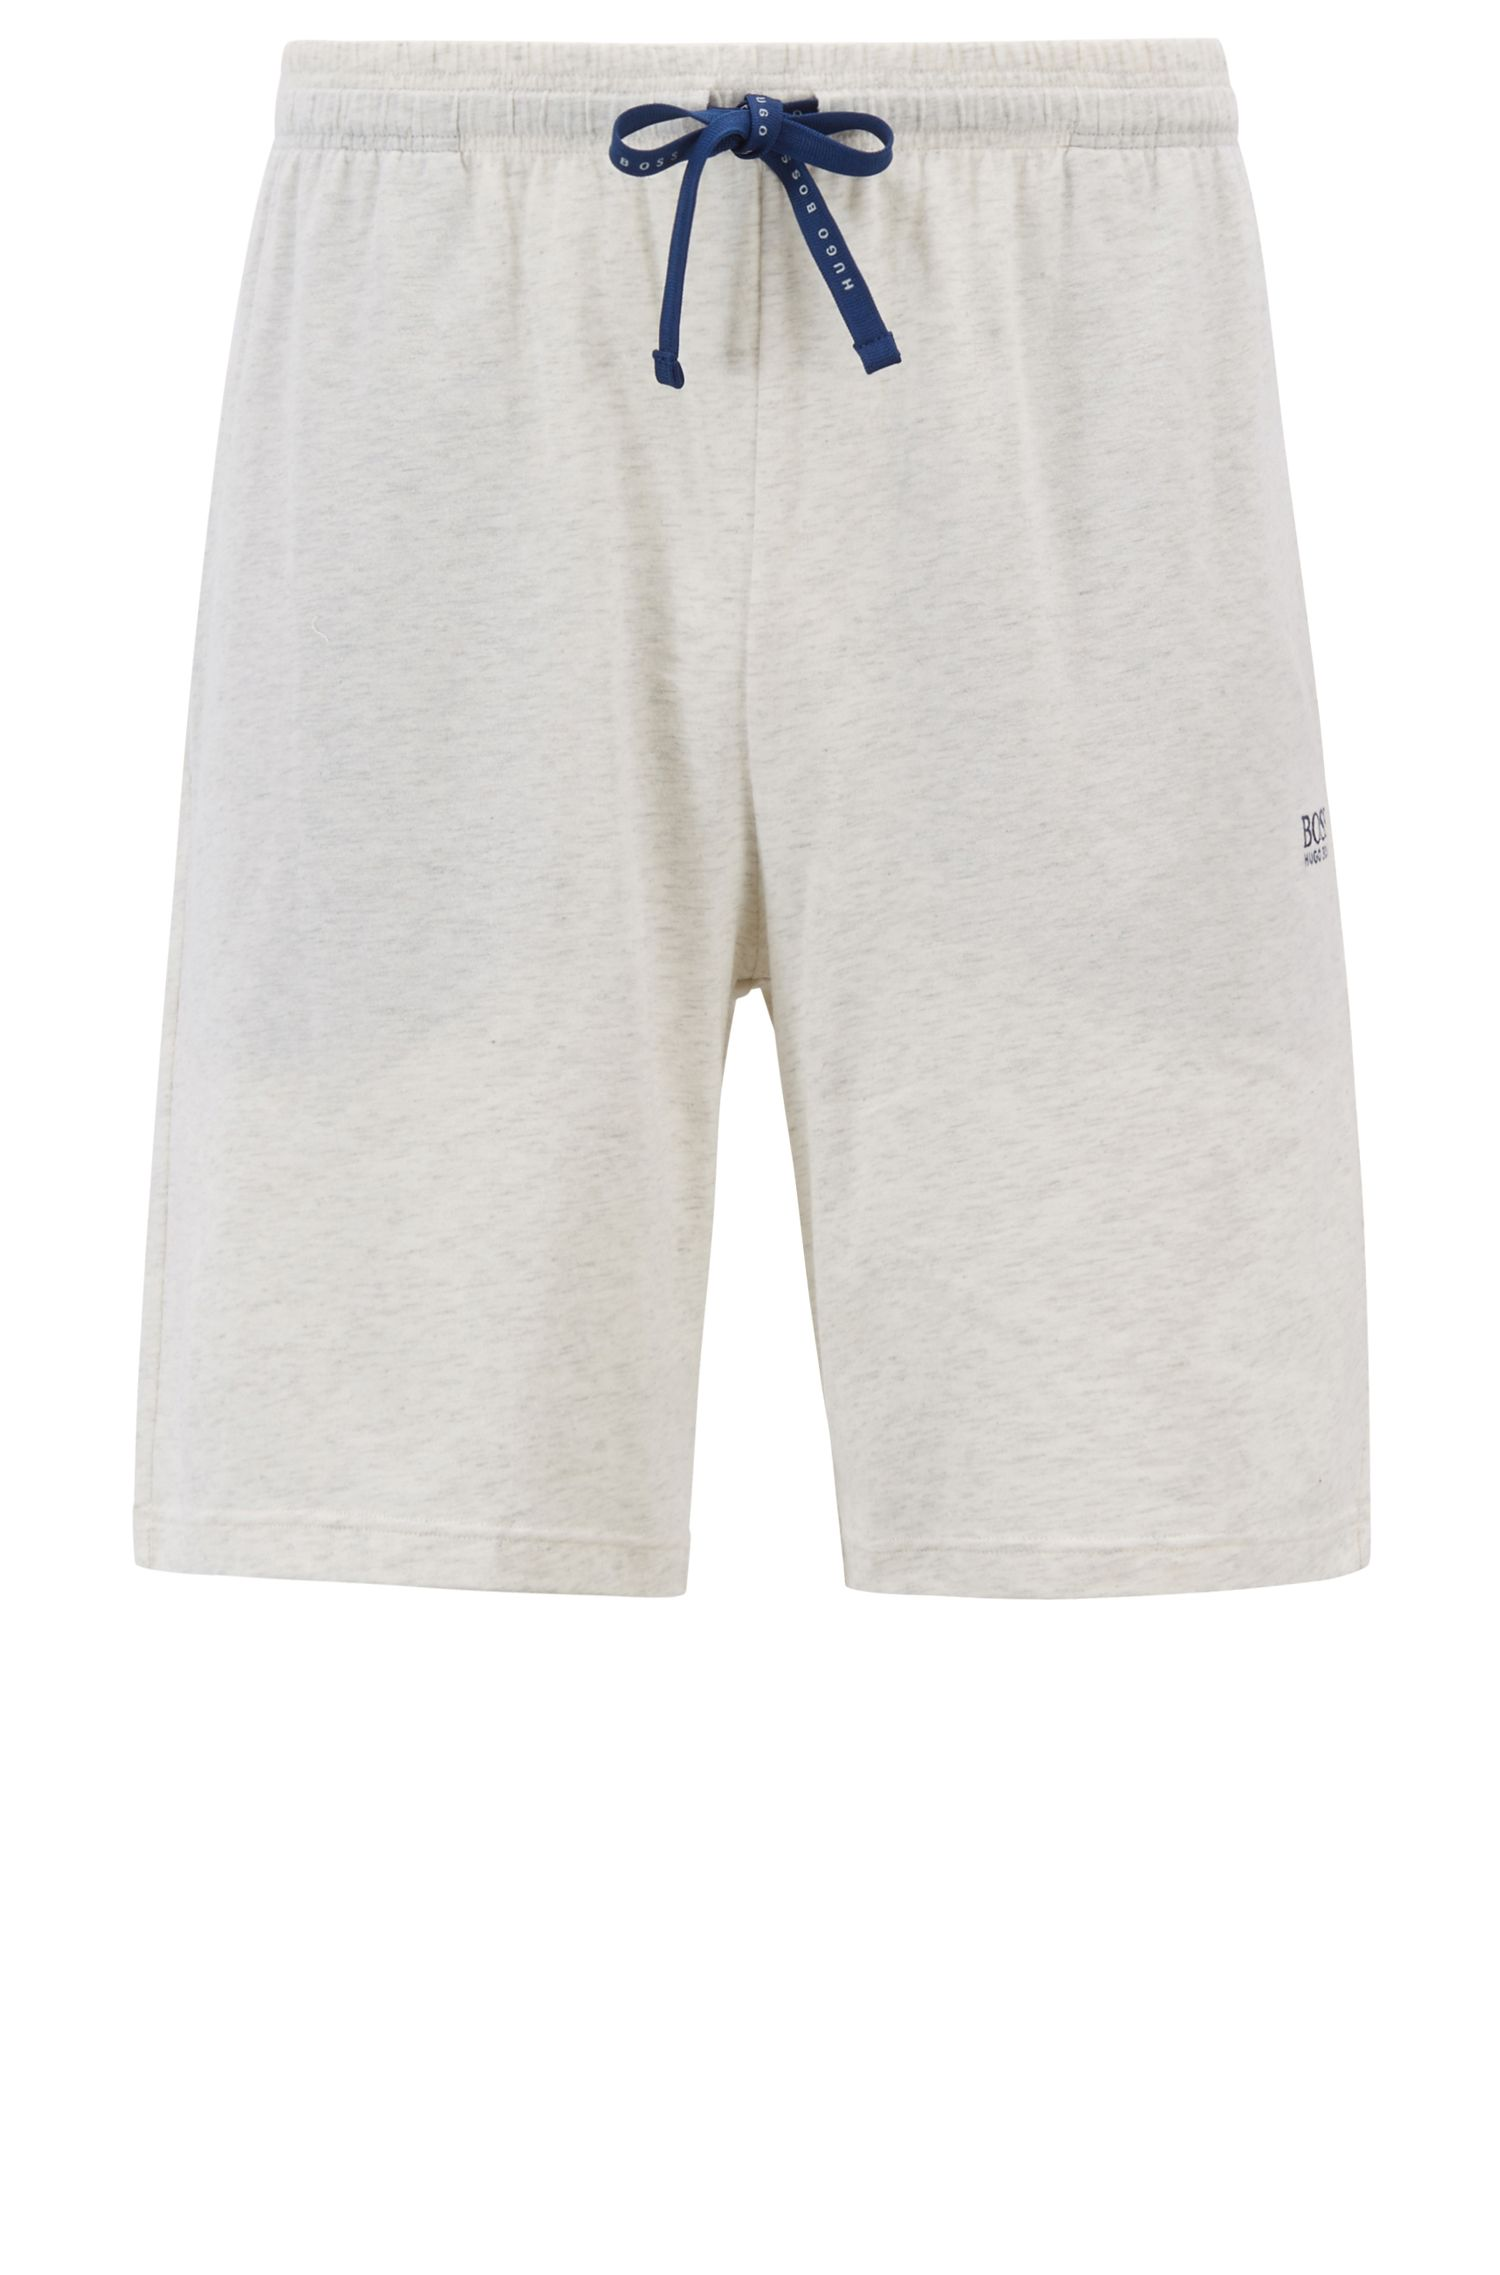 Hugo Boss - Loungewear shorts in stretch cotton jersey with drawstring waist - 1